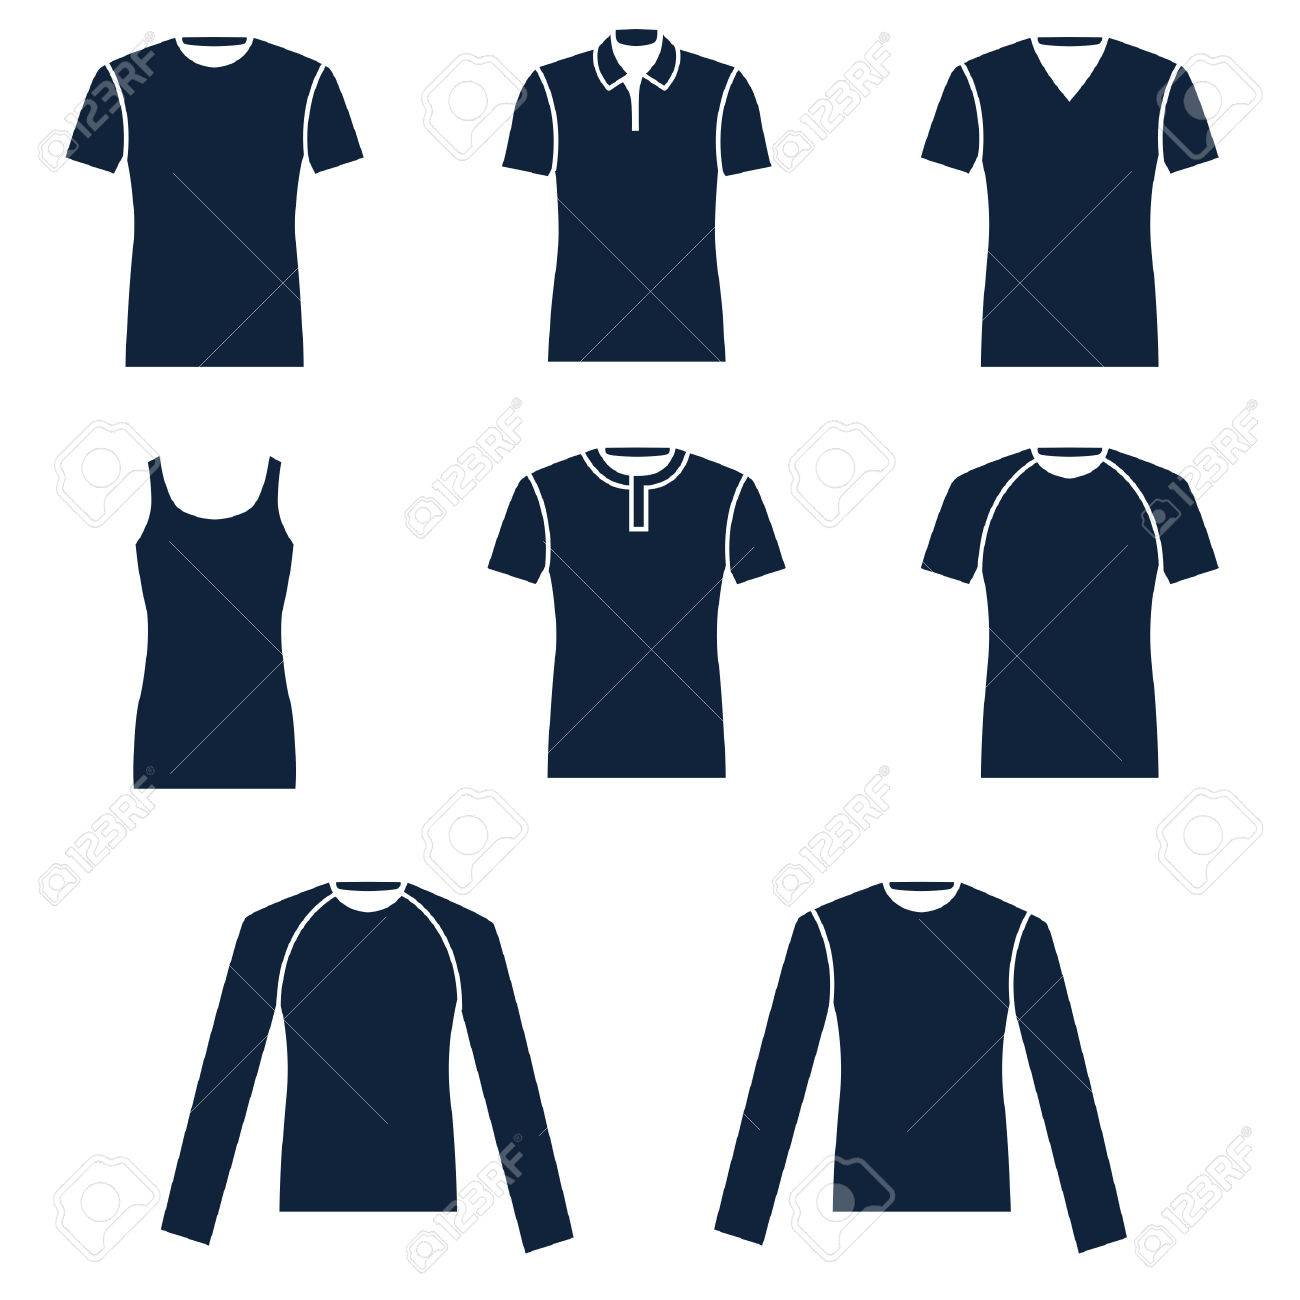 Different Types Of Mens T Shirts Royalty Free Cliparts Vectors And